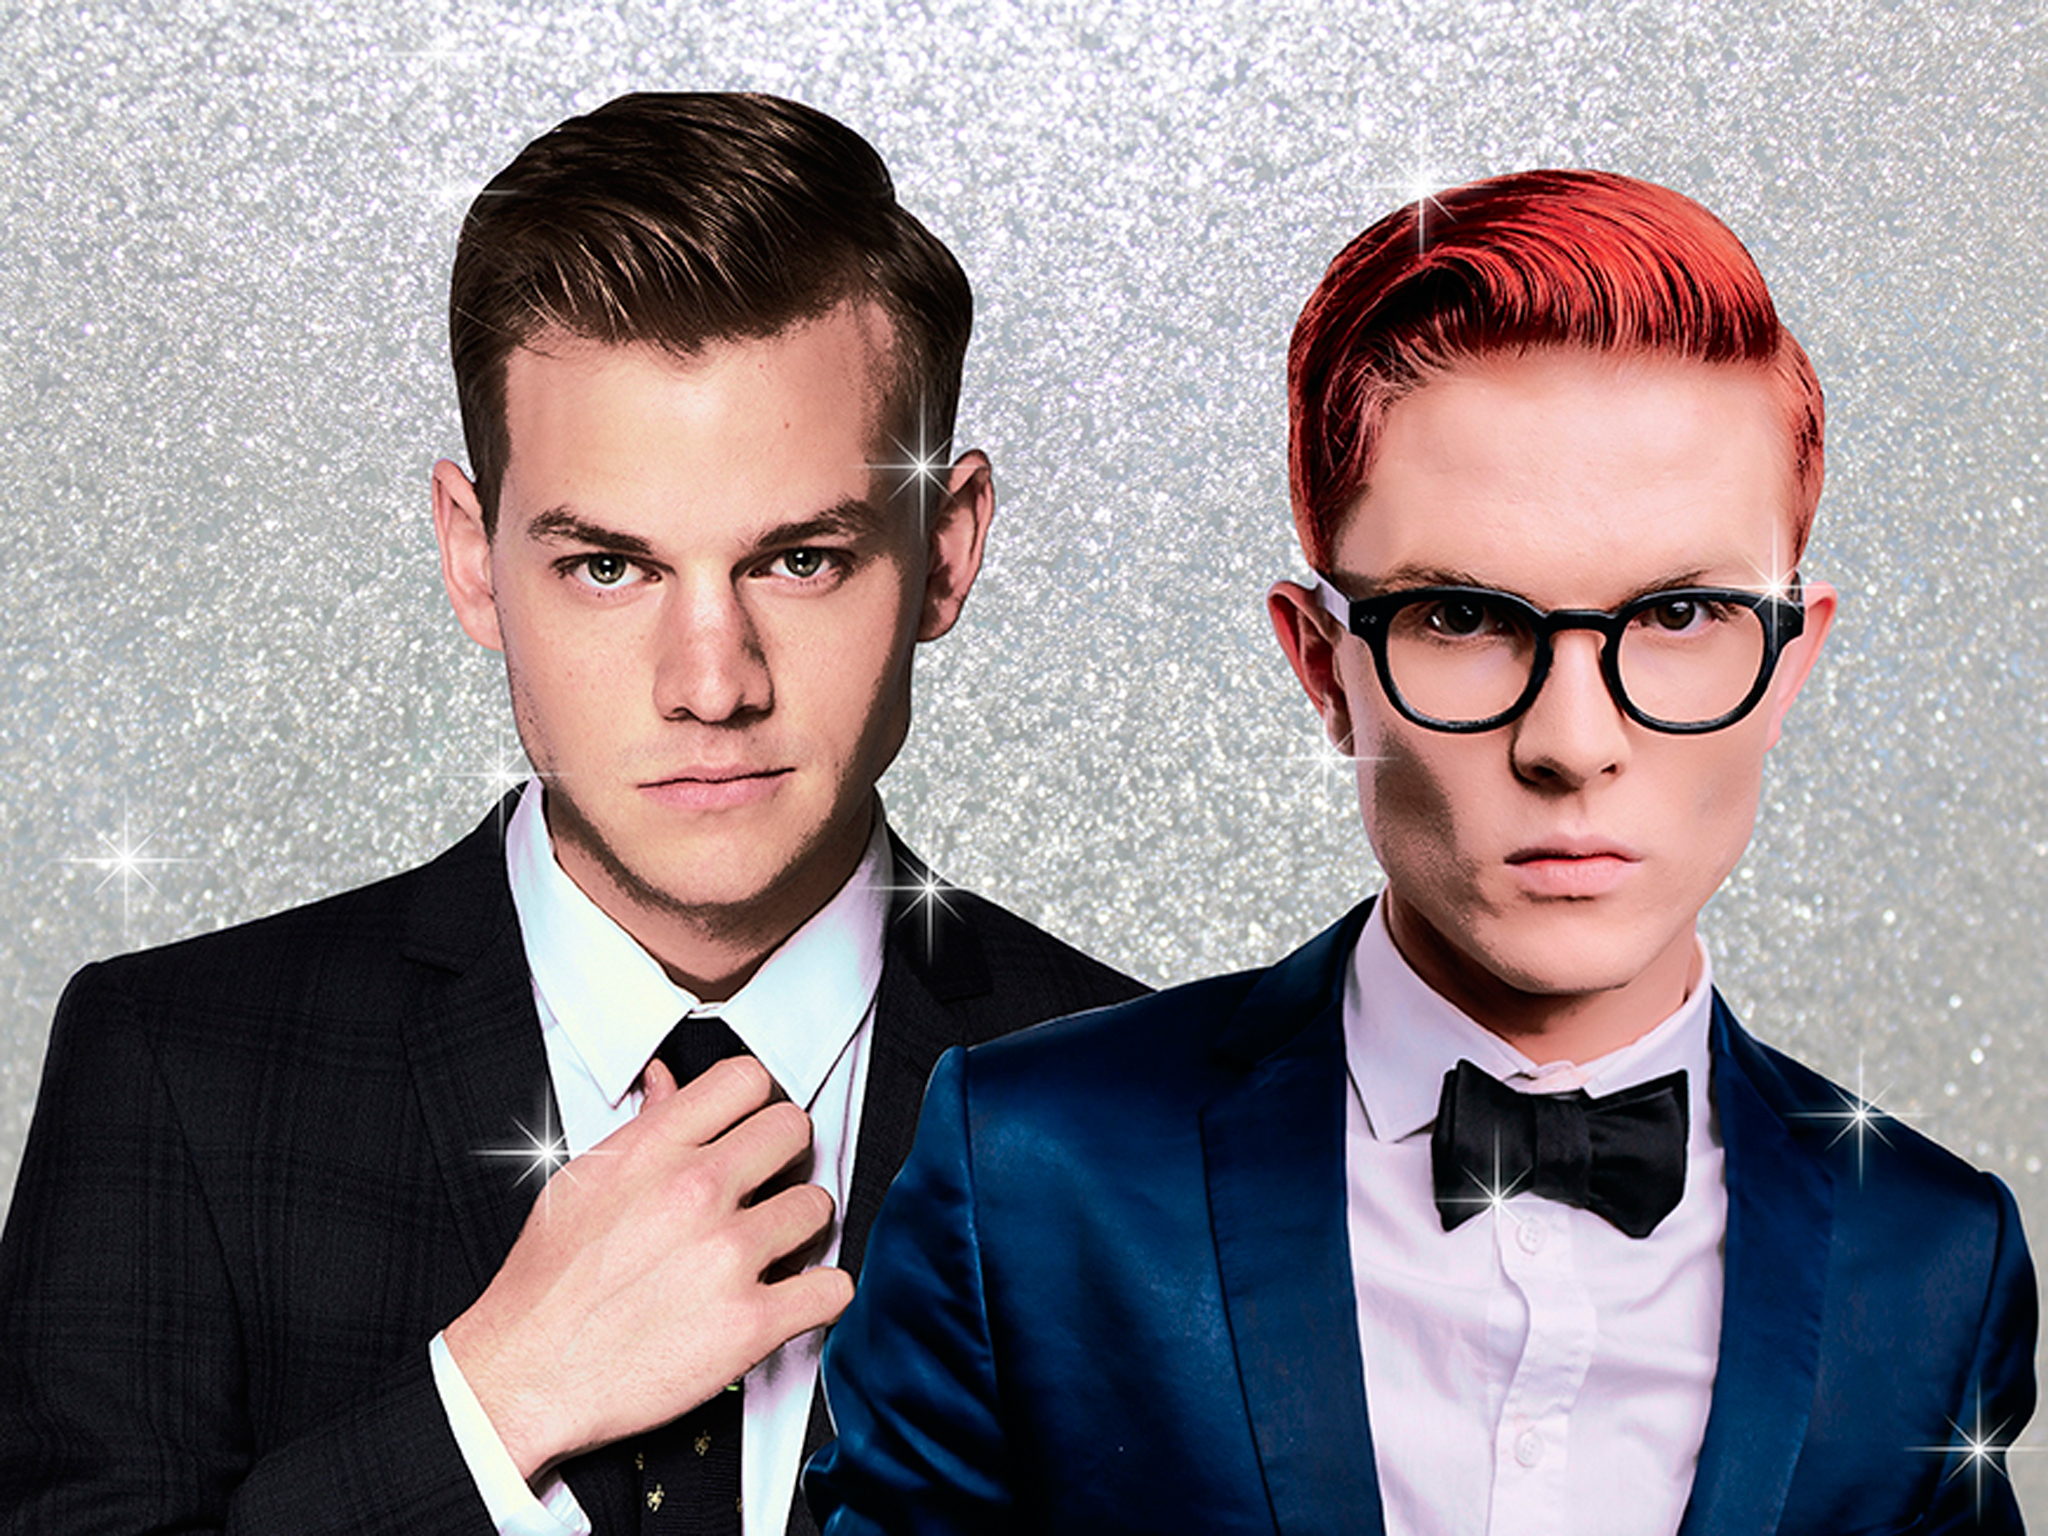 Joel Creasey and Rhys Nicholson's Gaymes Night